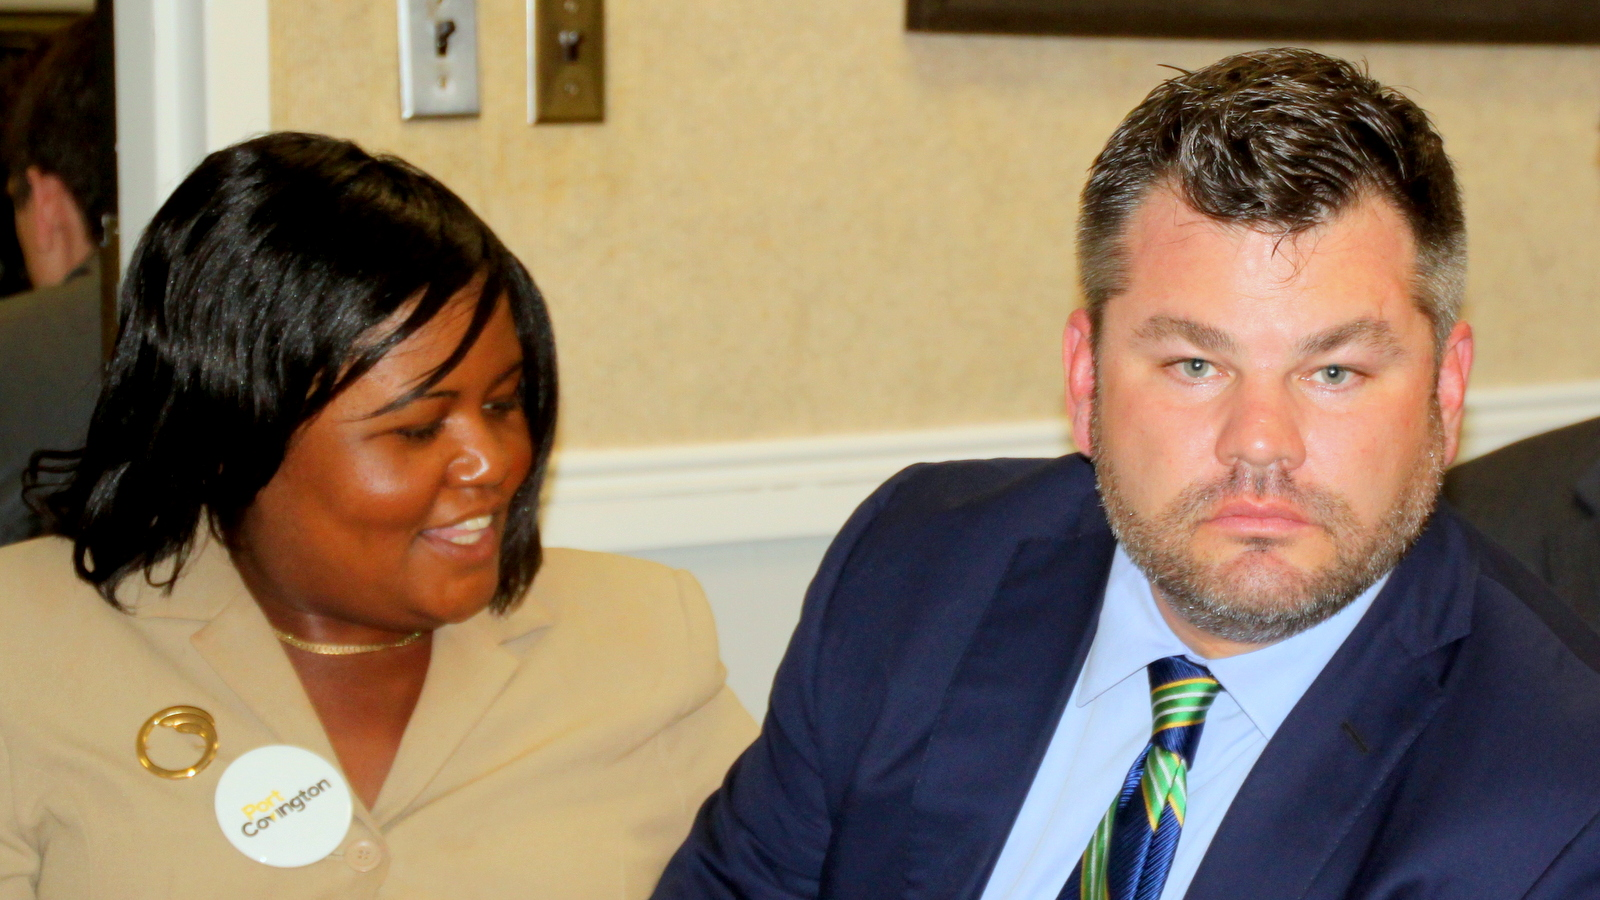 Sagamore's Alicia Wilson, with company president Marc Weller, at a meeting last month. (Fern Shen)